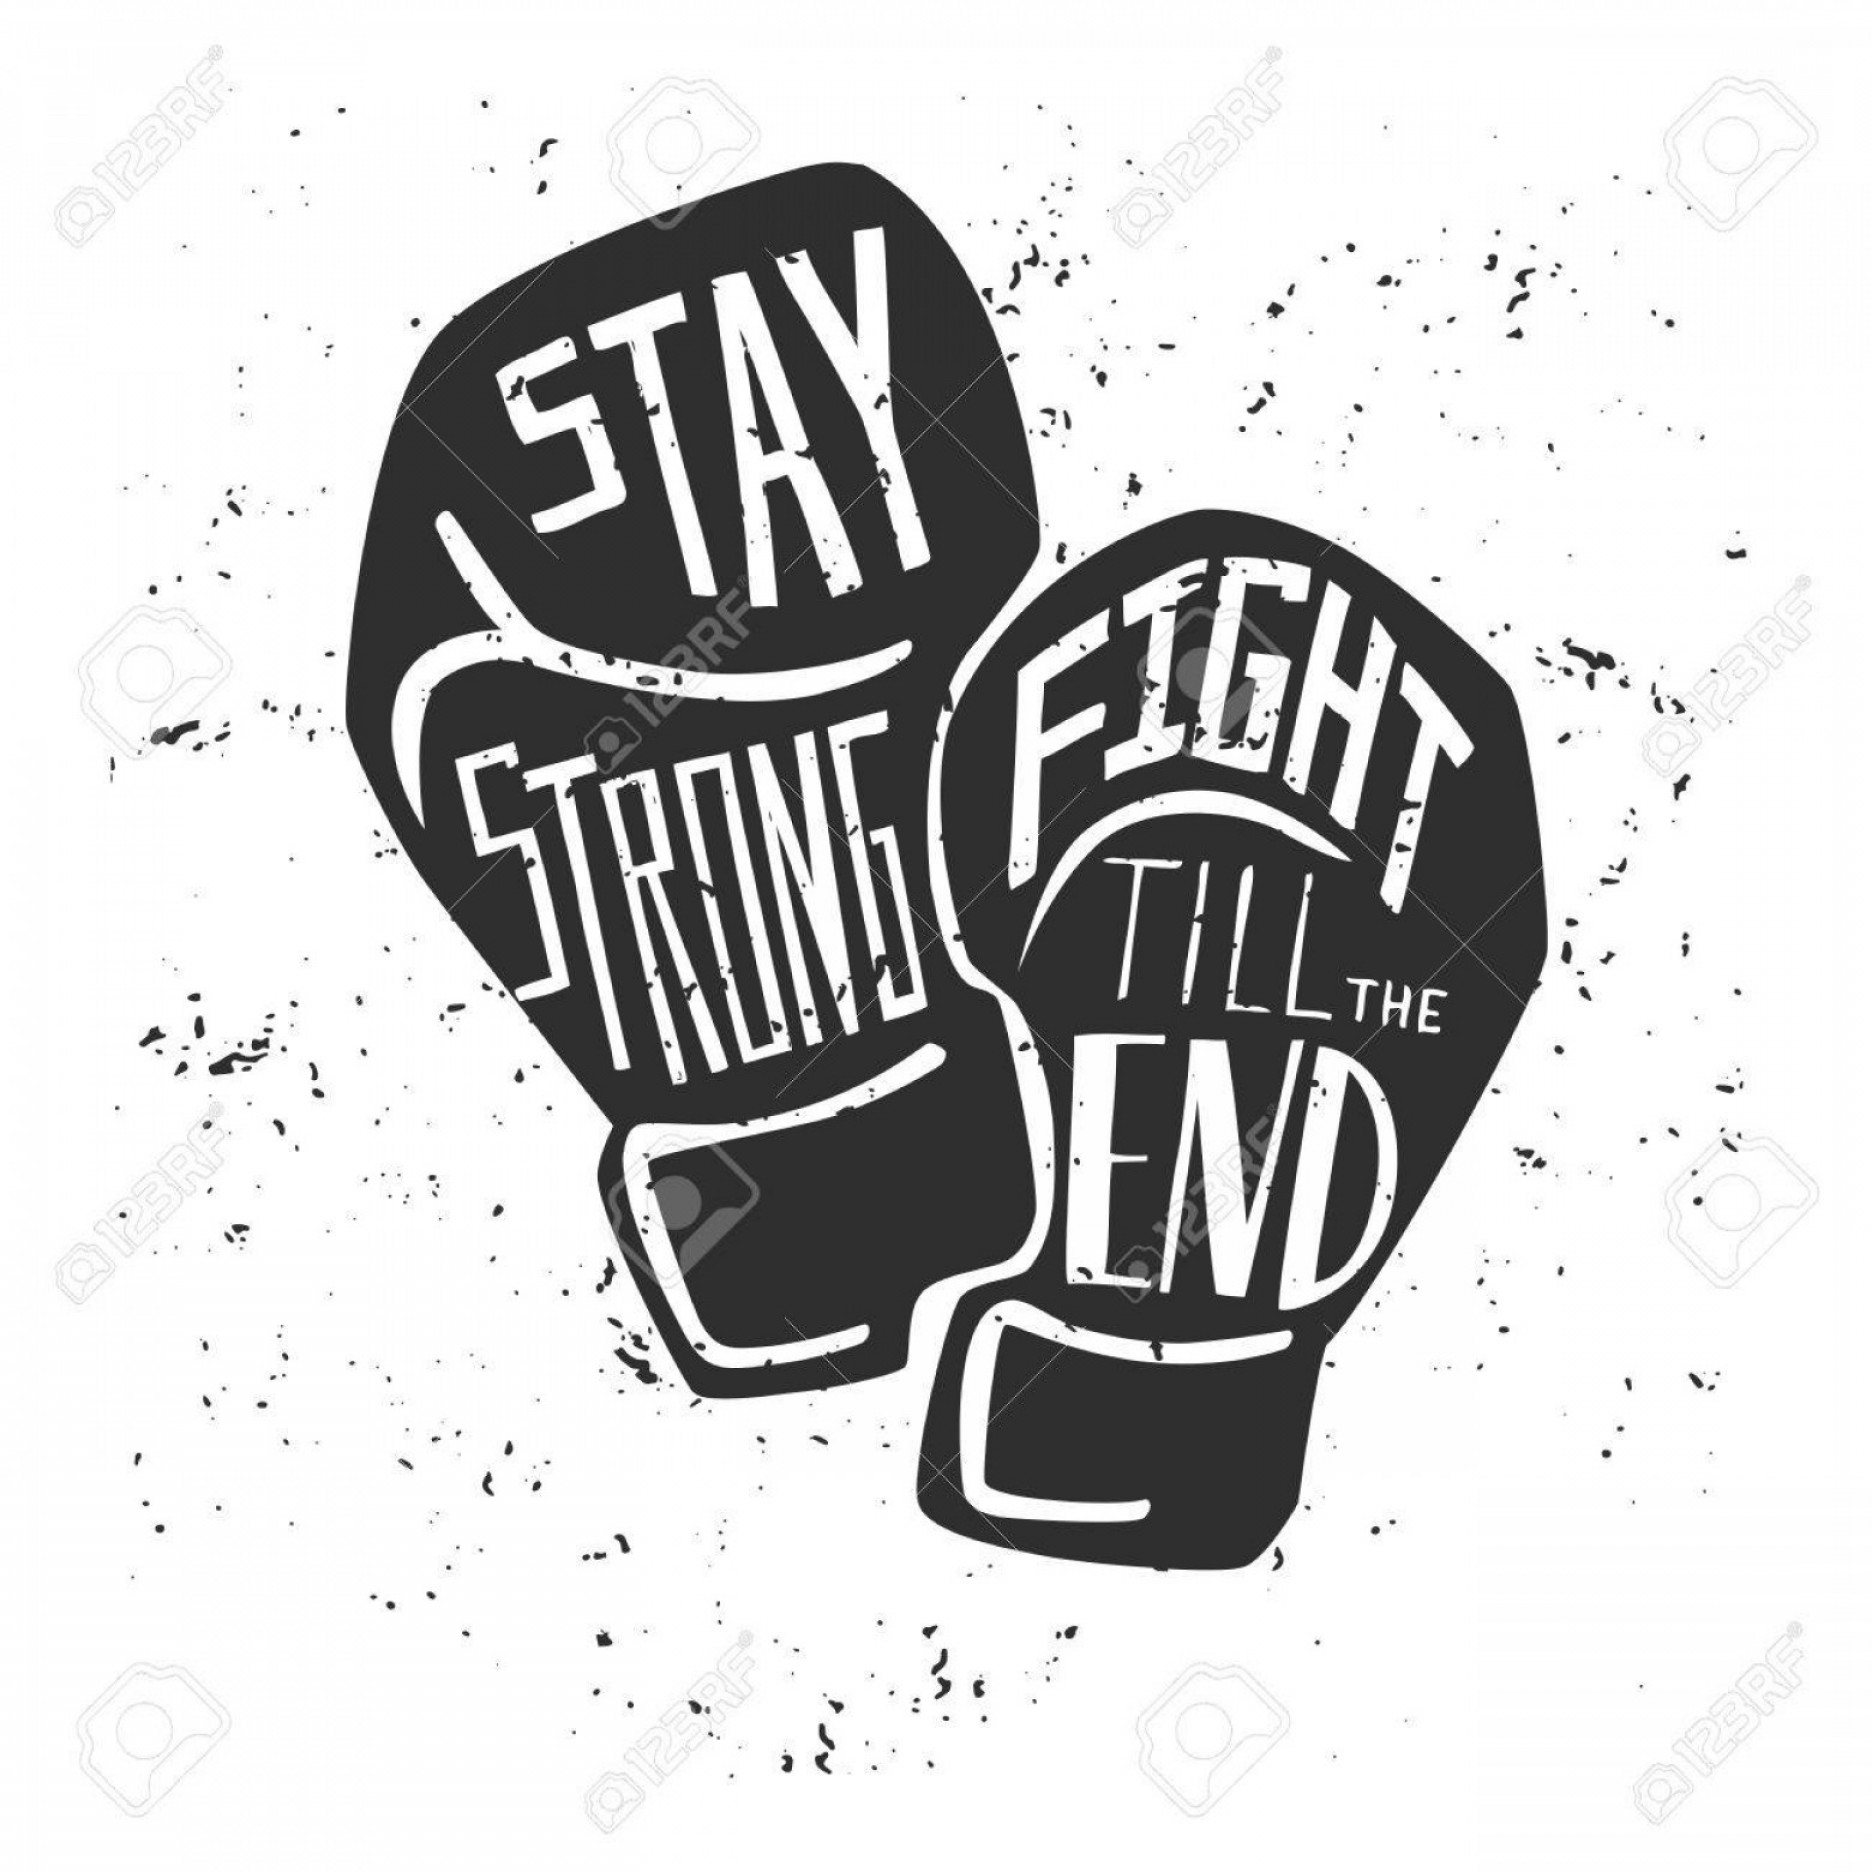 Pictures Of Boxing Gloves Vector Art: Photostock Vector Vector Card And Poster With Black Silhouette Of Boxing Gloves And White Hand Written Illustration Wi